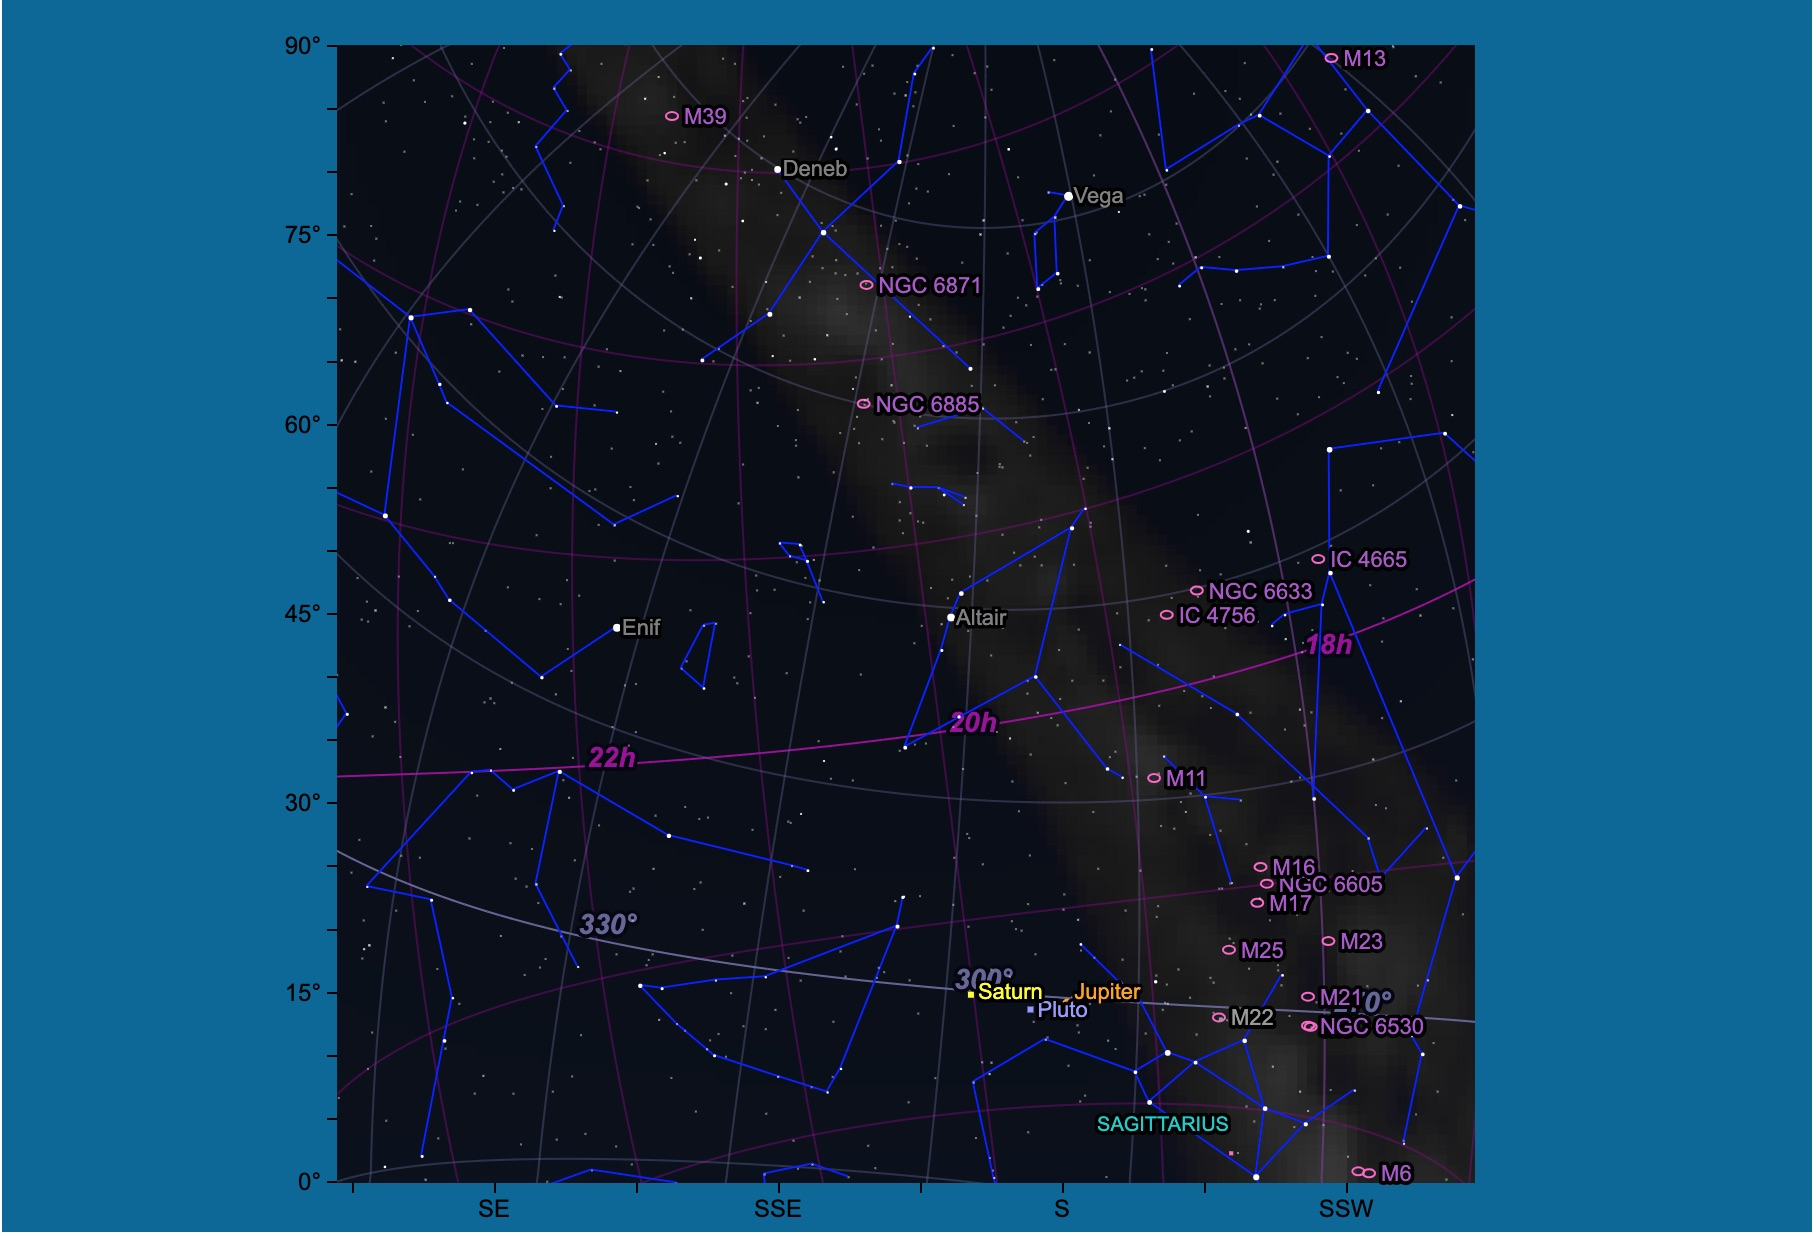 Where to find the Cygnus Star Cloud